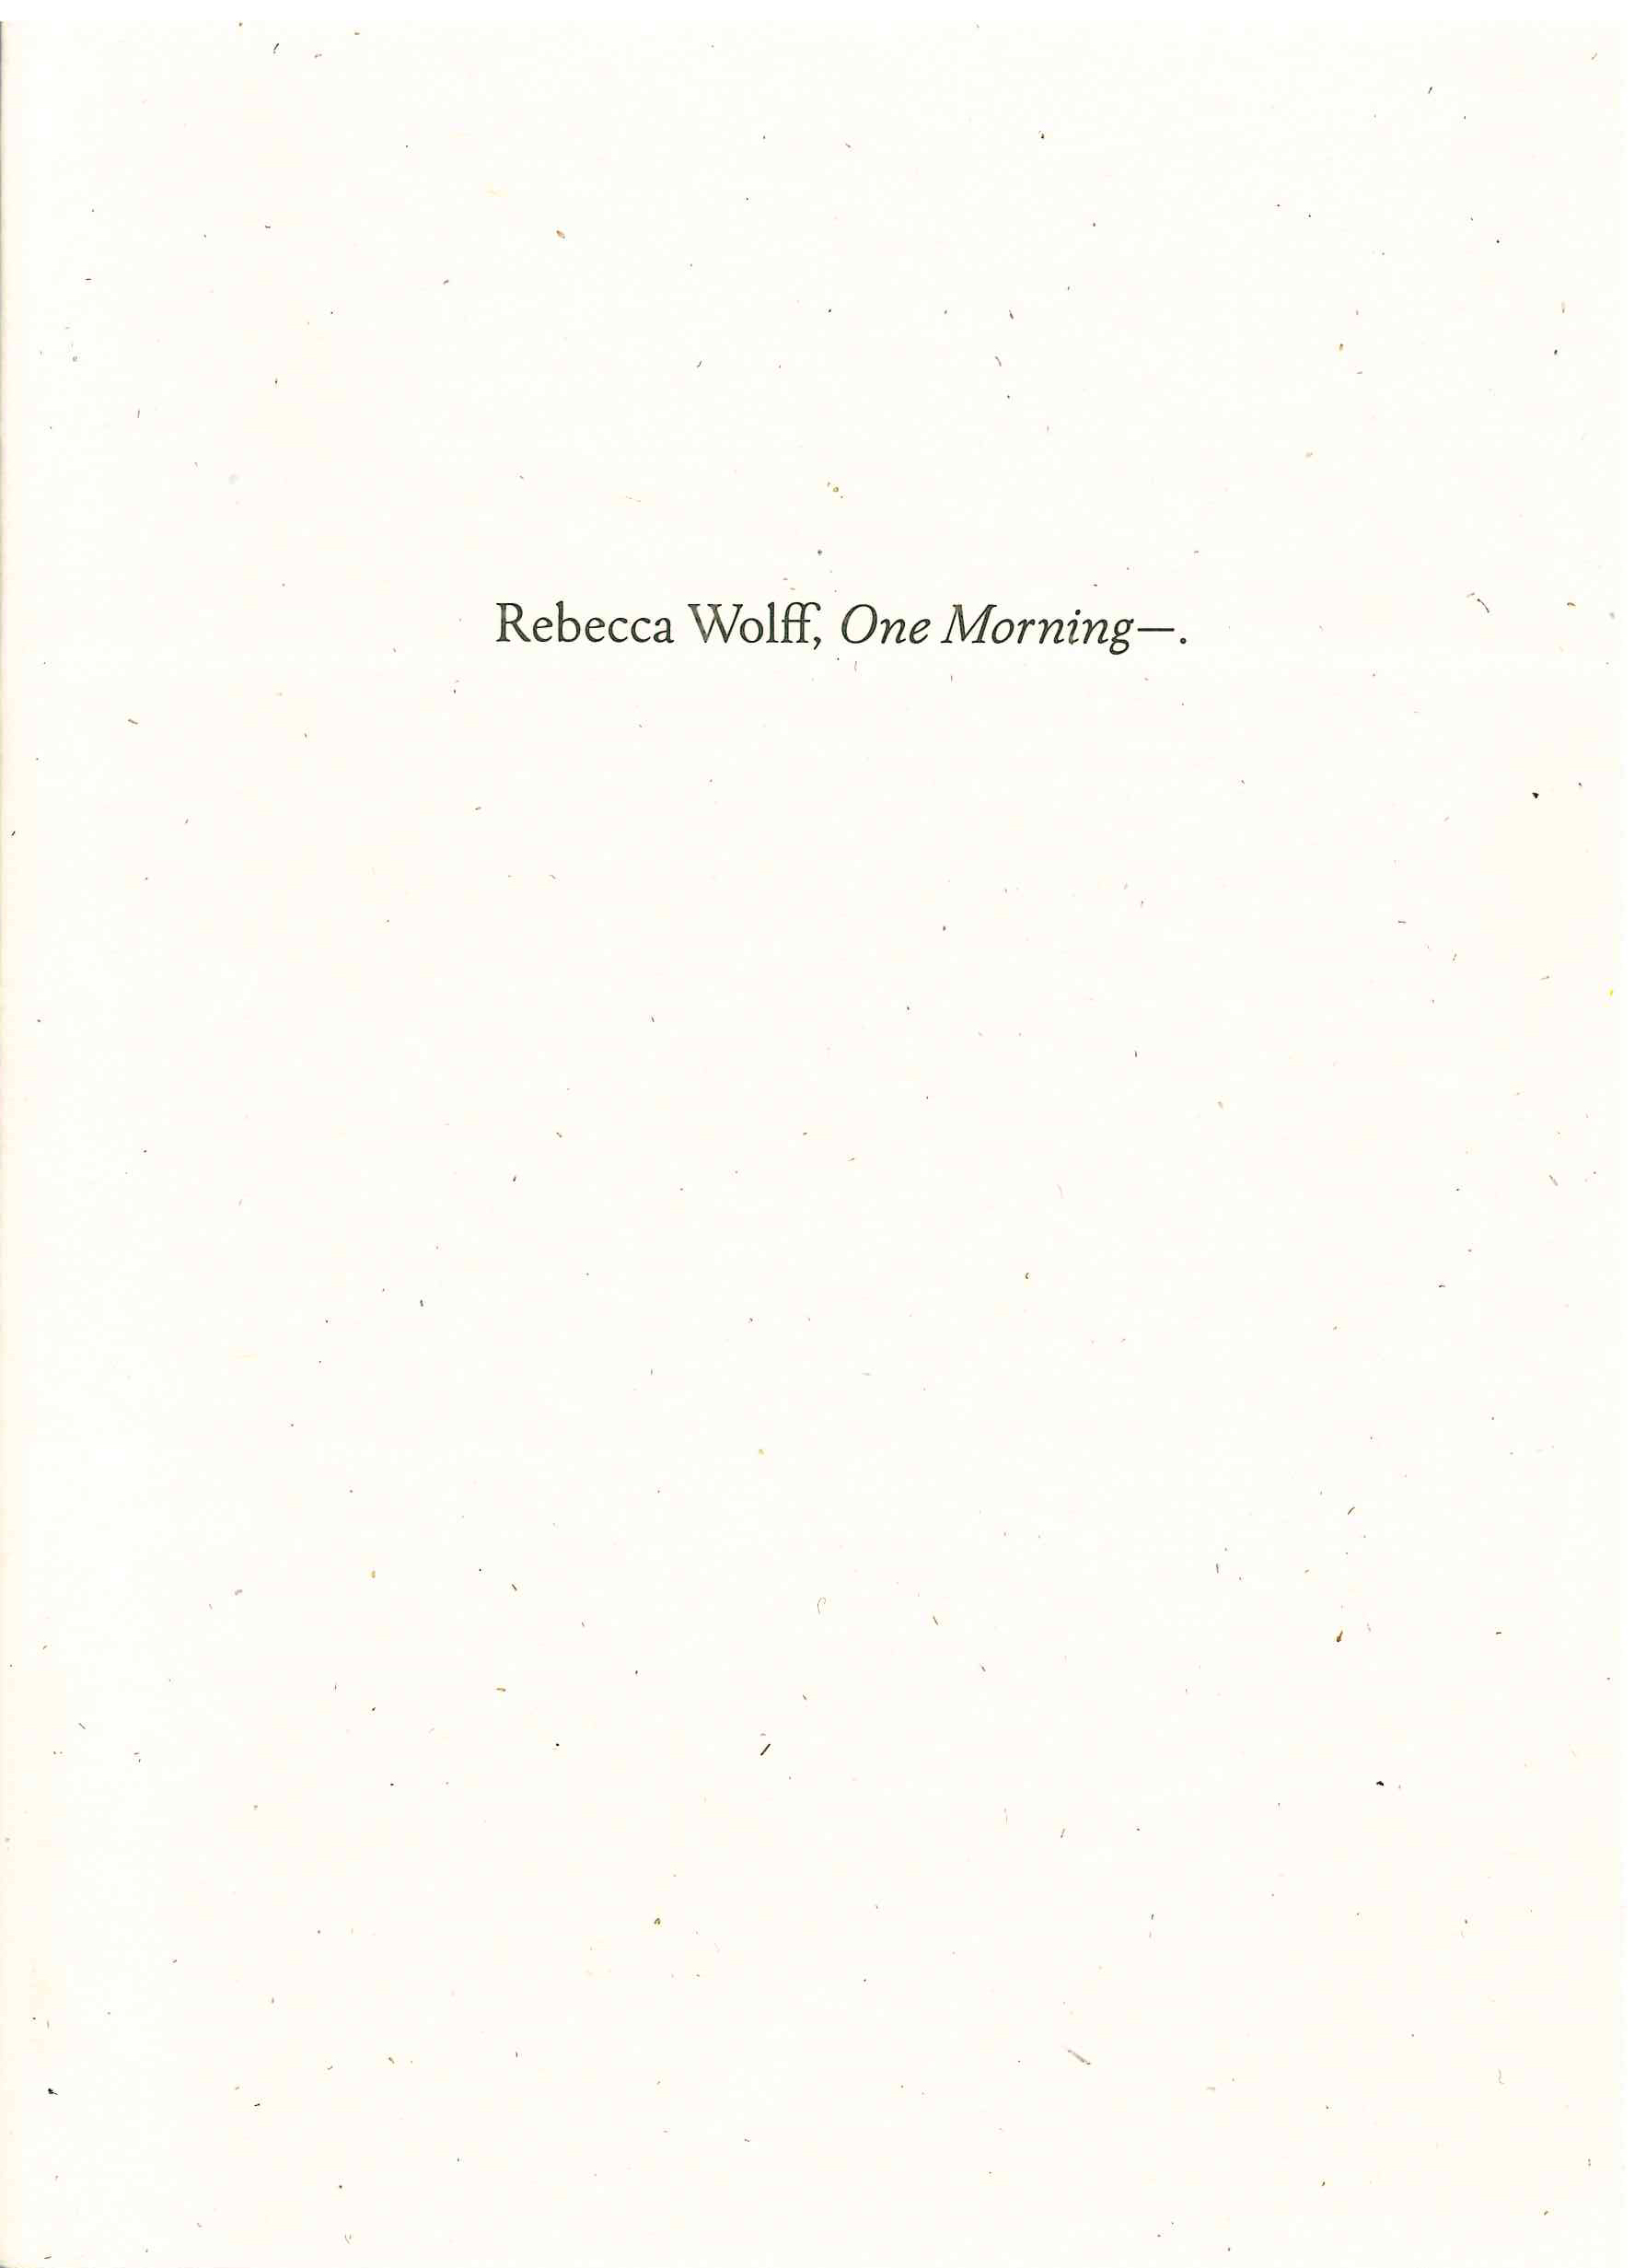 One Morning— Rebecca Wolff